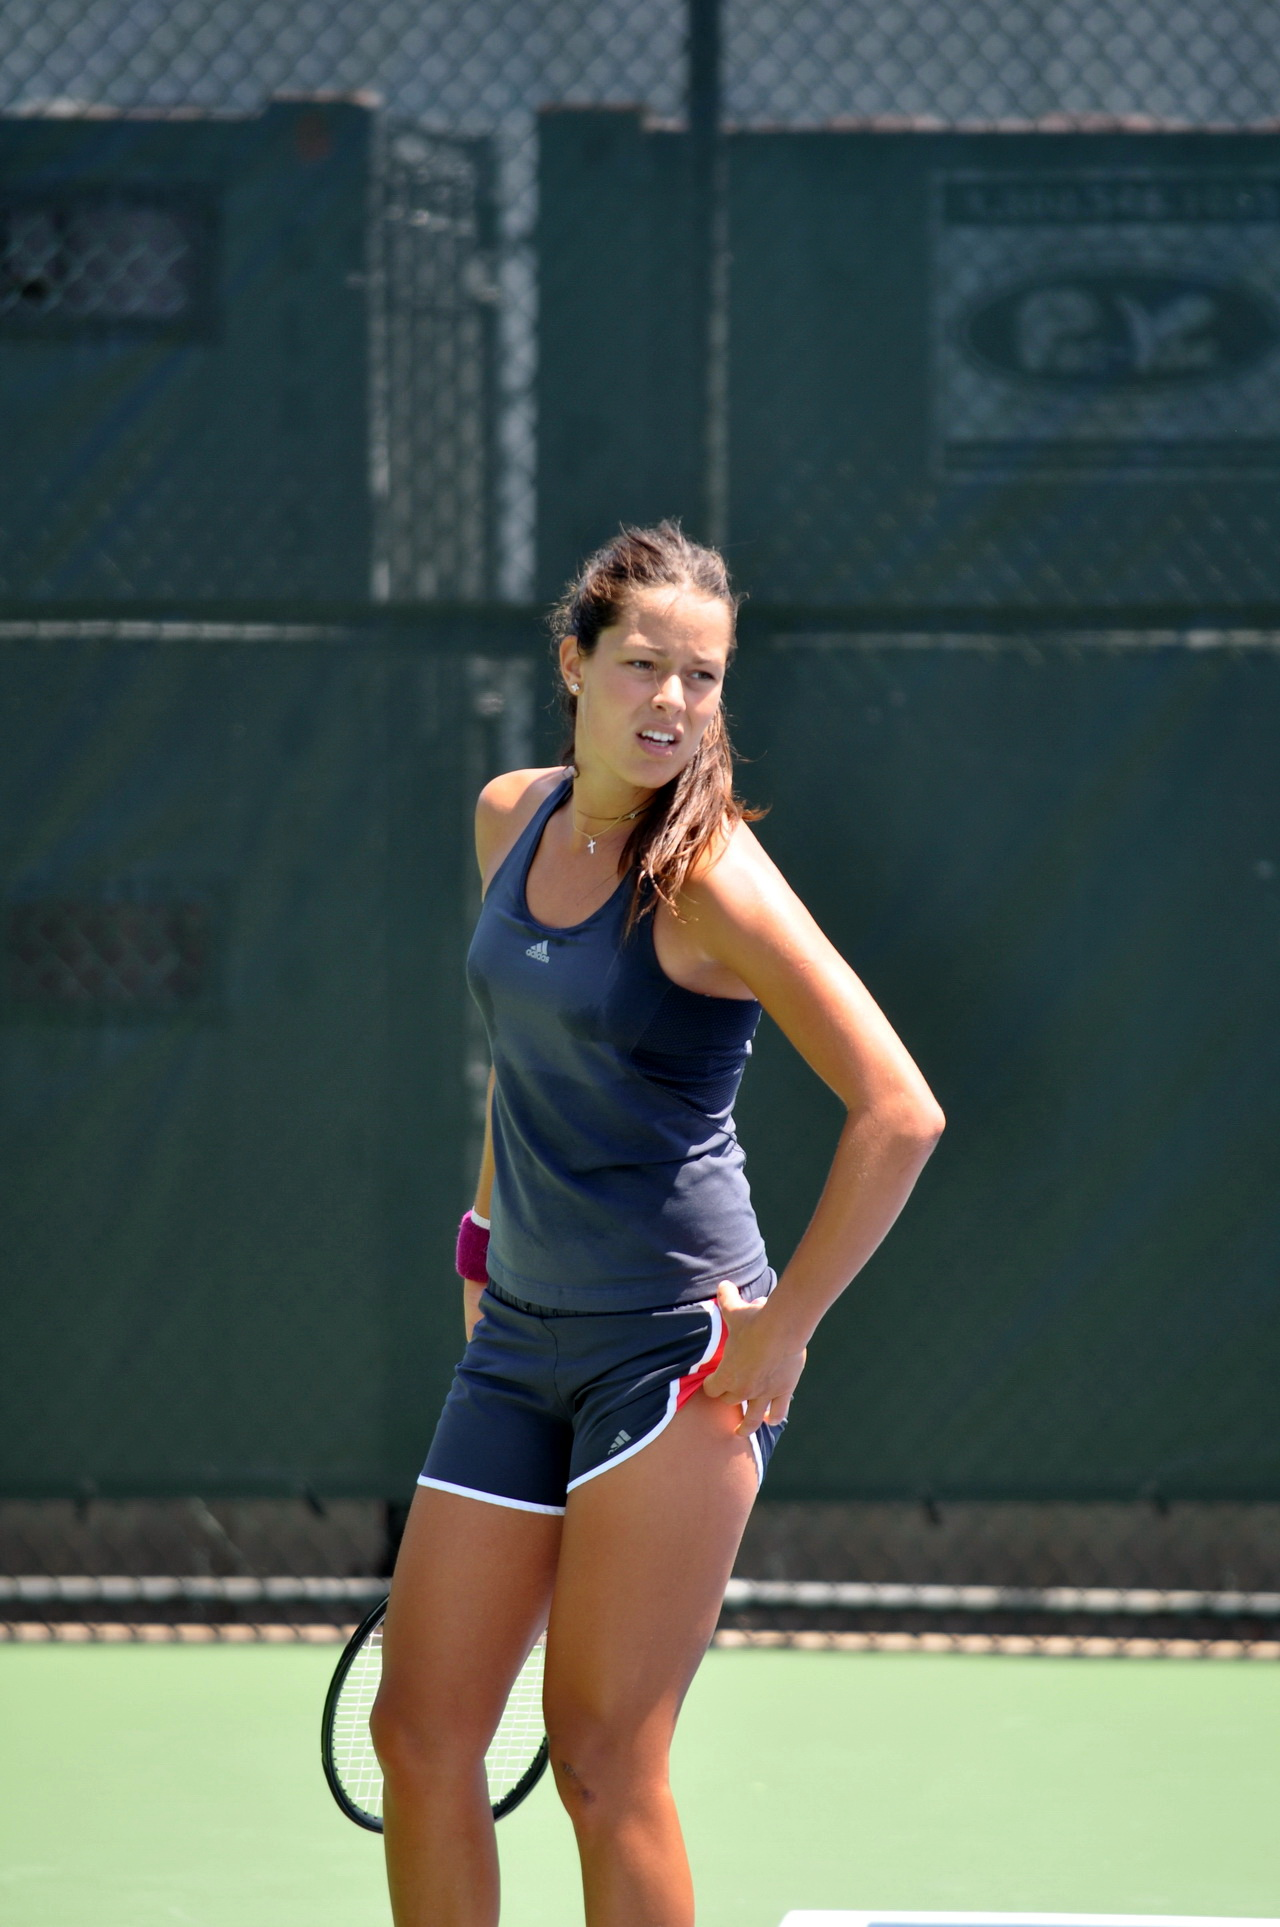 Ana ivanovic shows her ass during a game in birningham 2